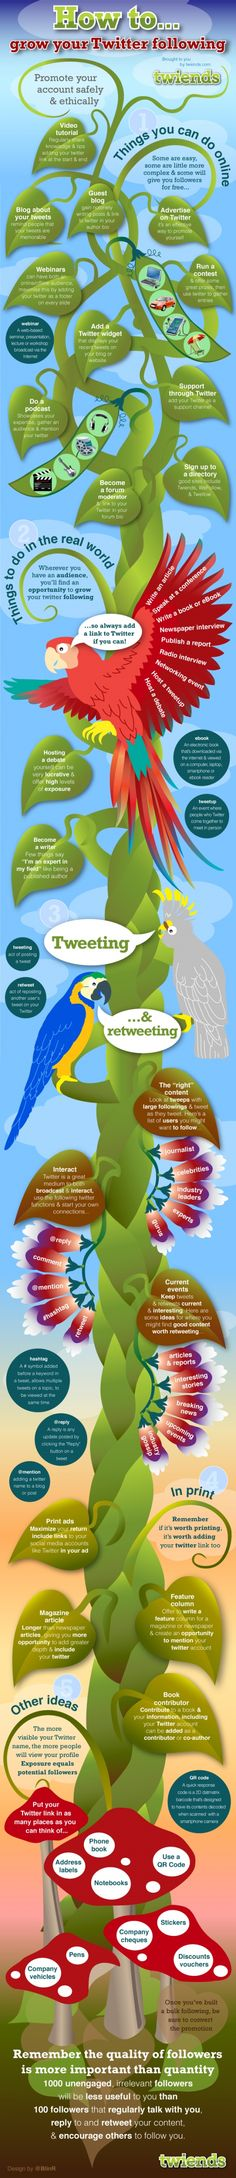 #Infographic: How To Grow Your Twitter Audience | #SocialMedia